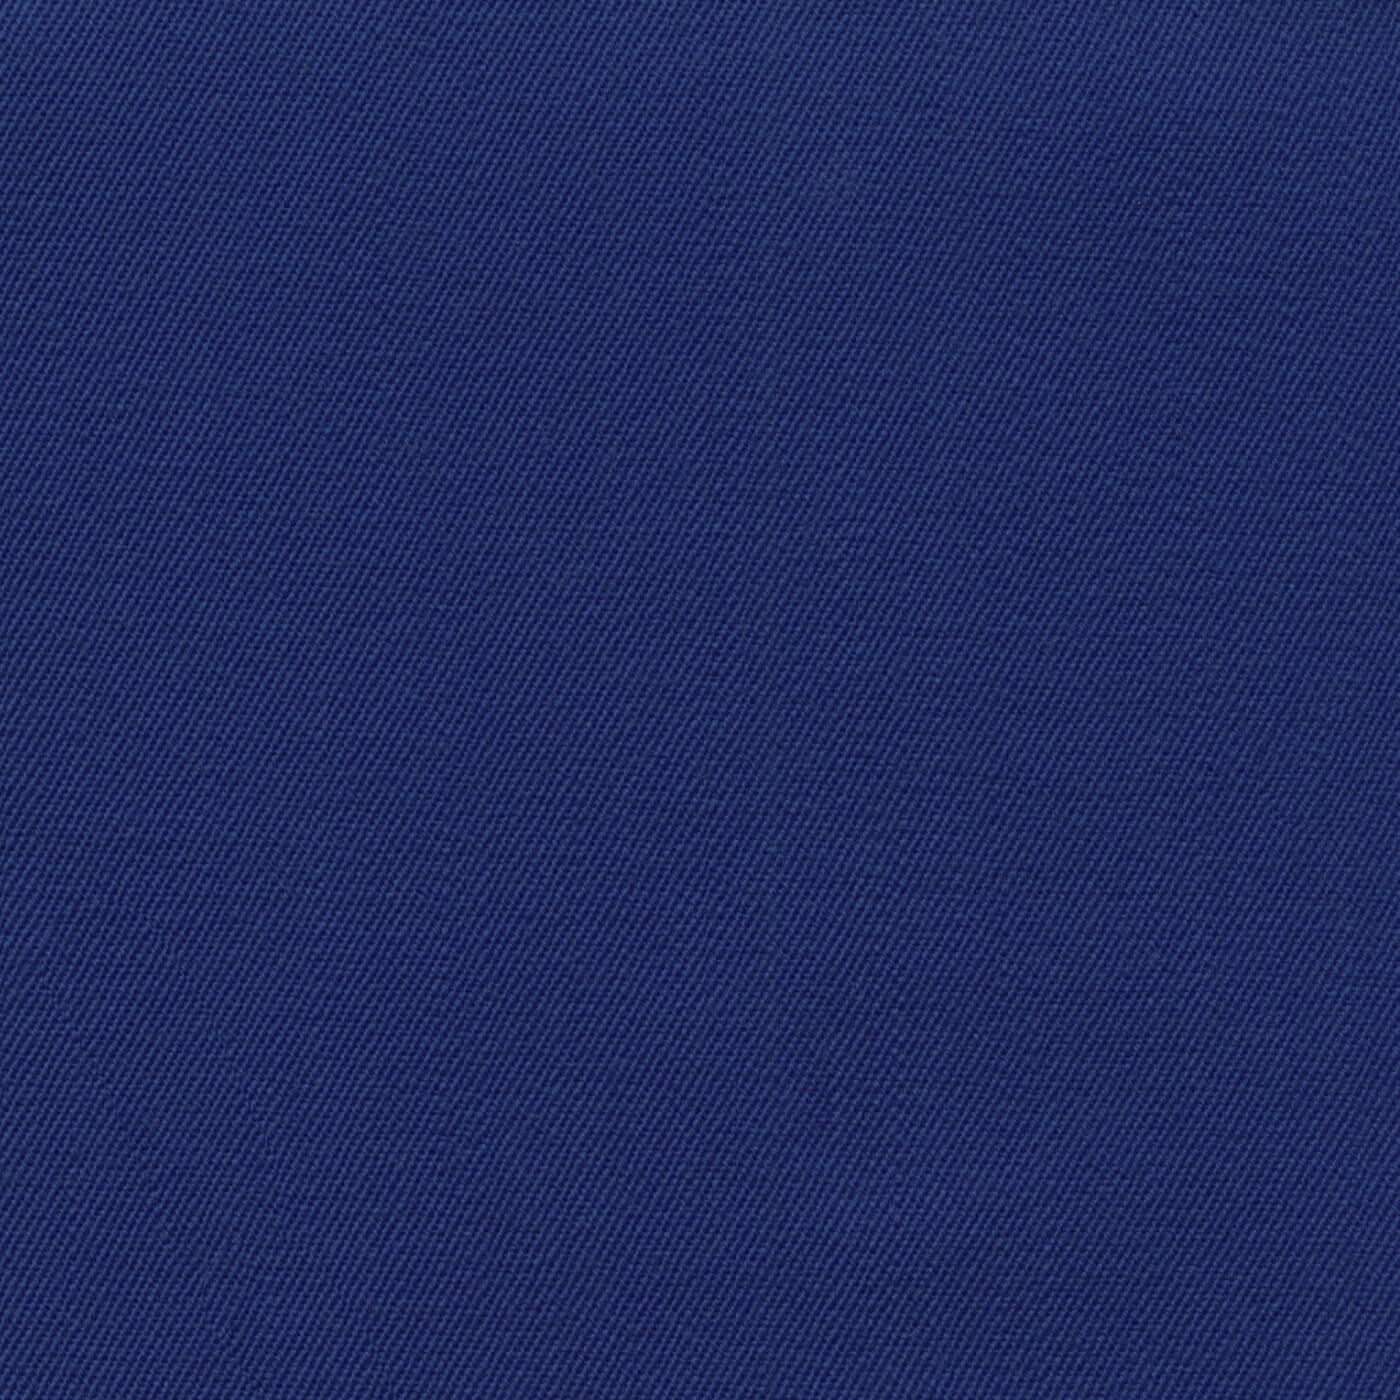 PrestonWoolTwill 75025 Electric Blue